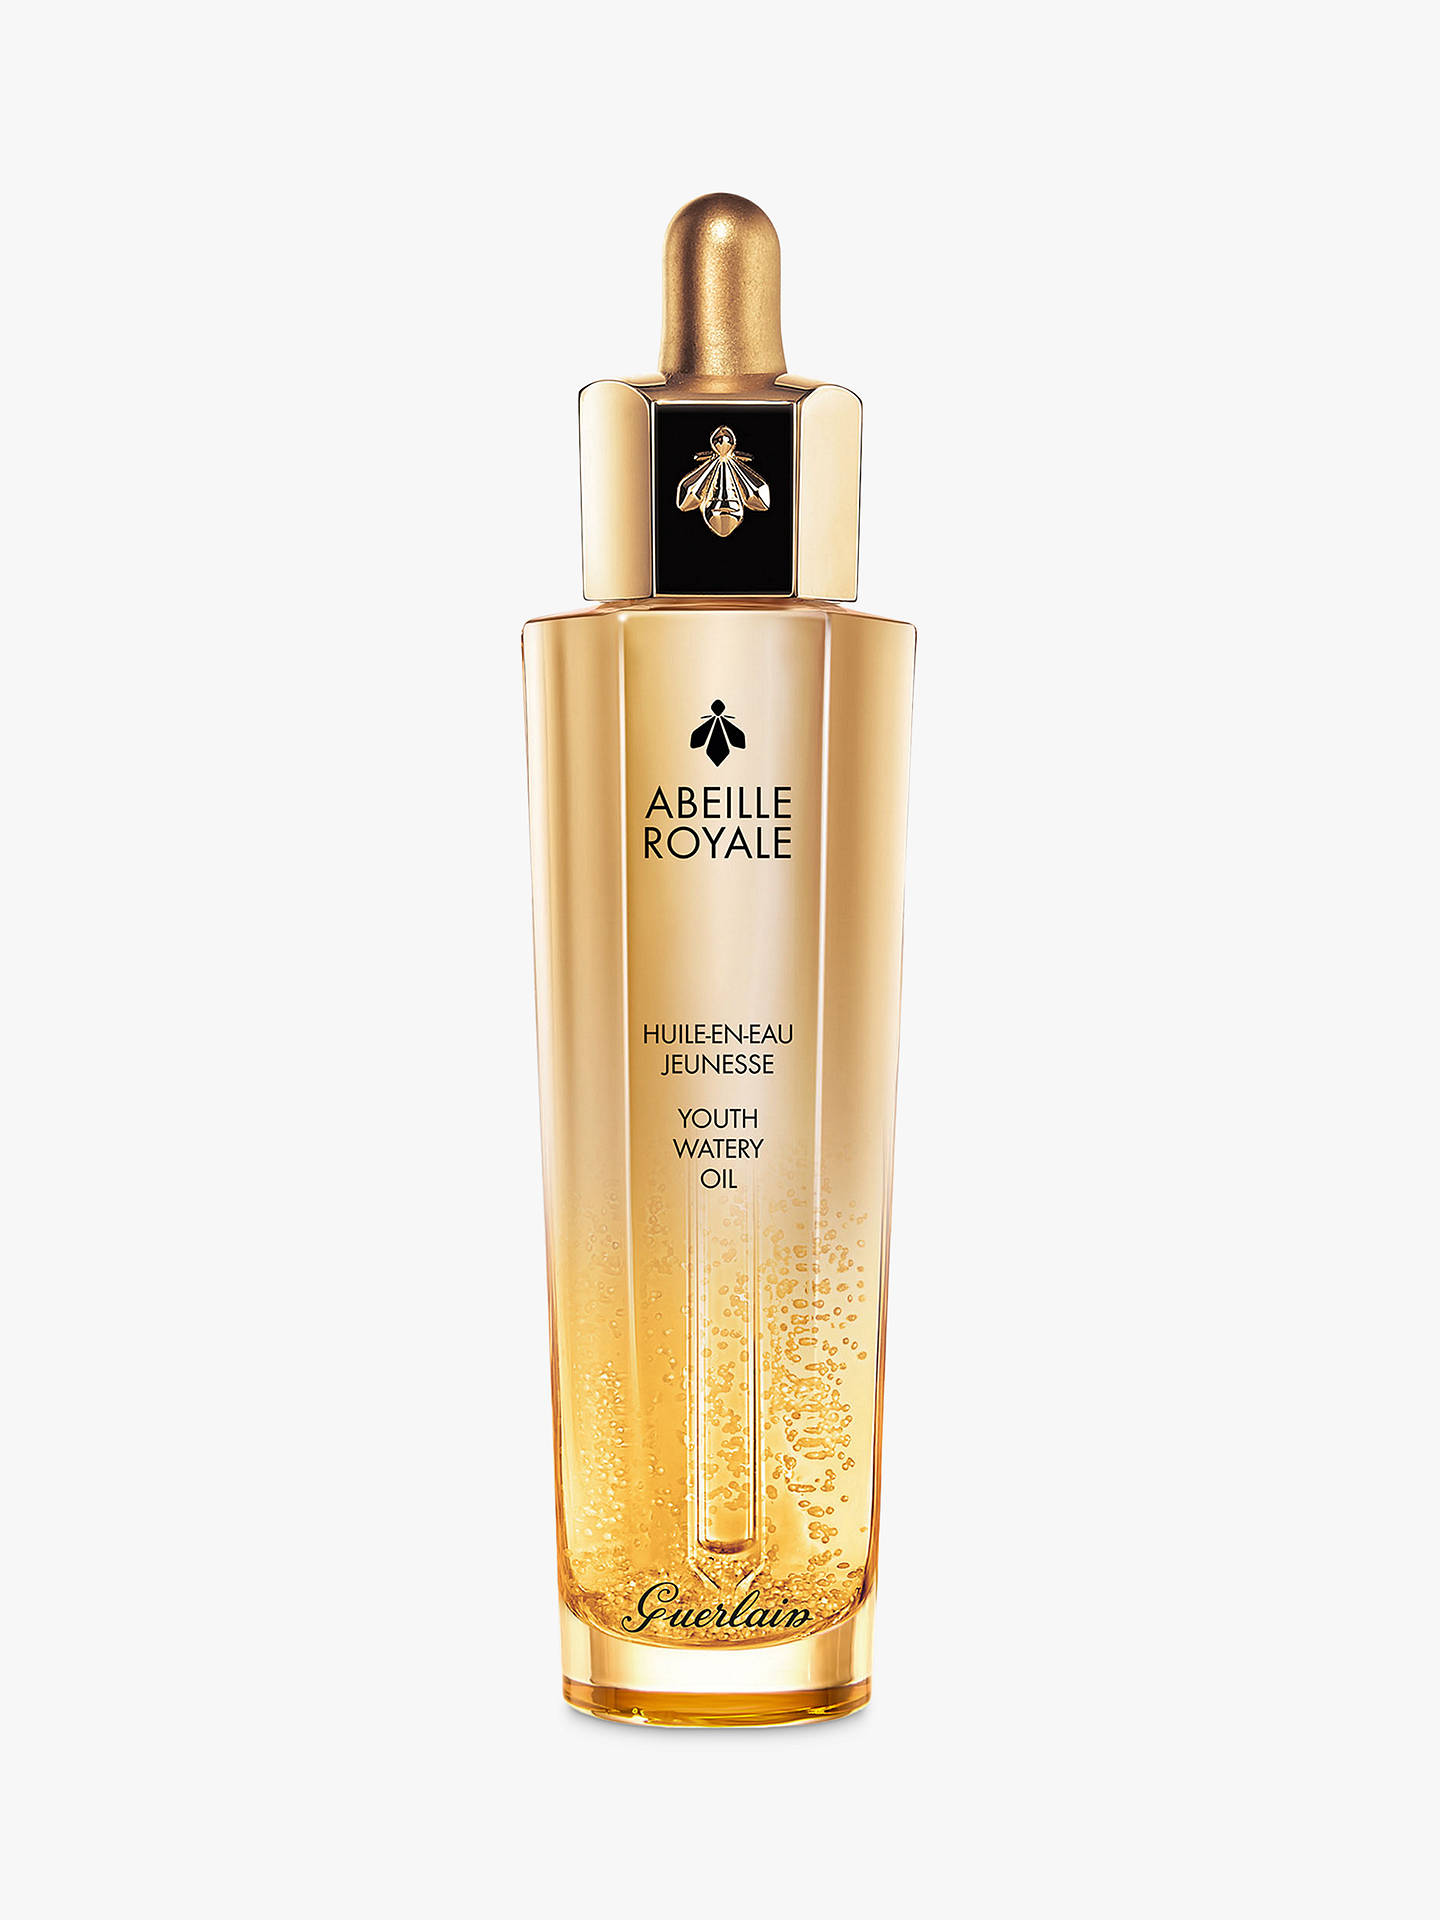 Guerlain Abeille Royale Youth Watery Oil Limited Edition ...